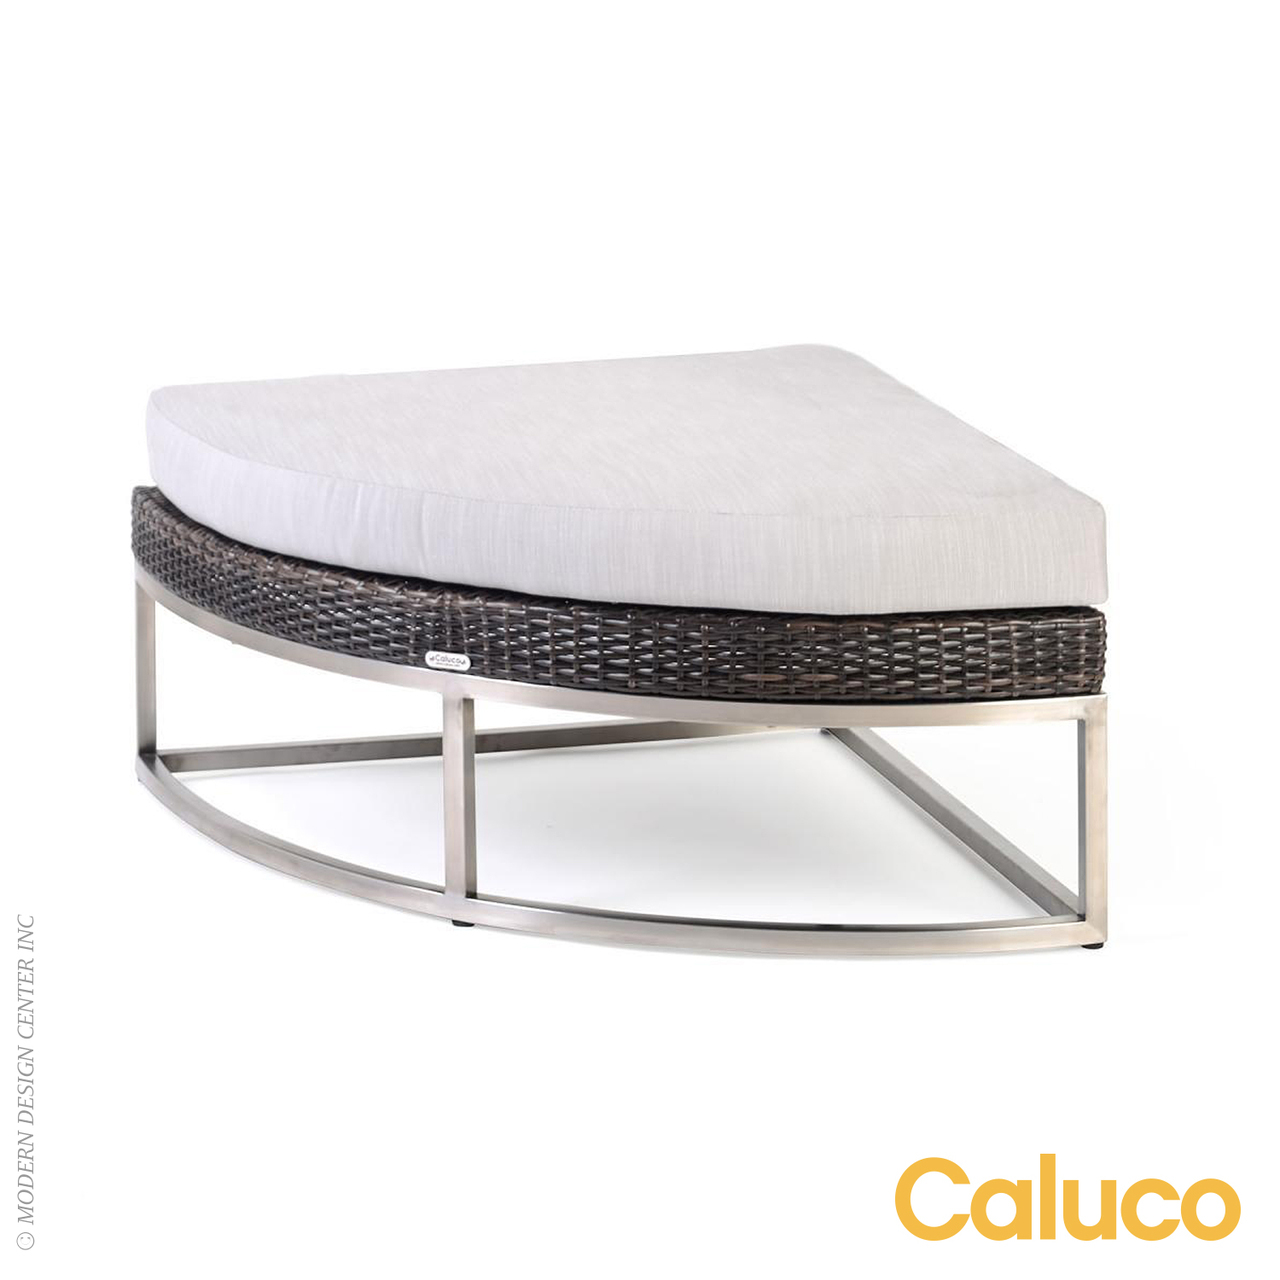 Mirabella Curved Ottoman | Caluco Patio Furniture